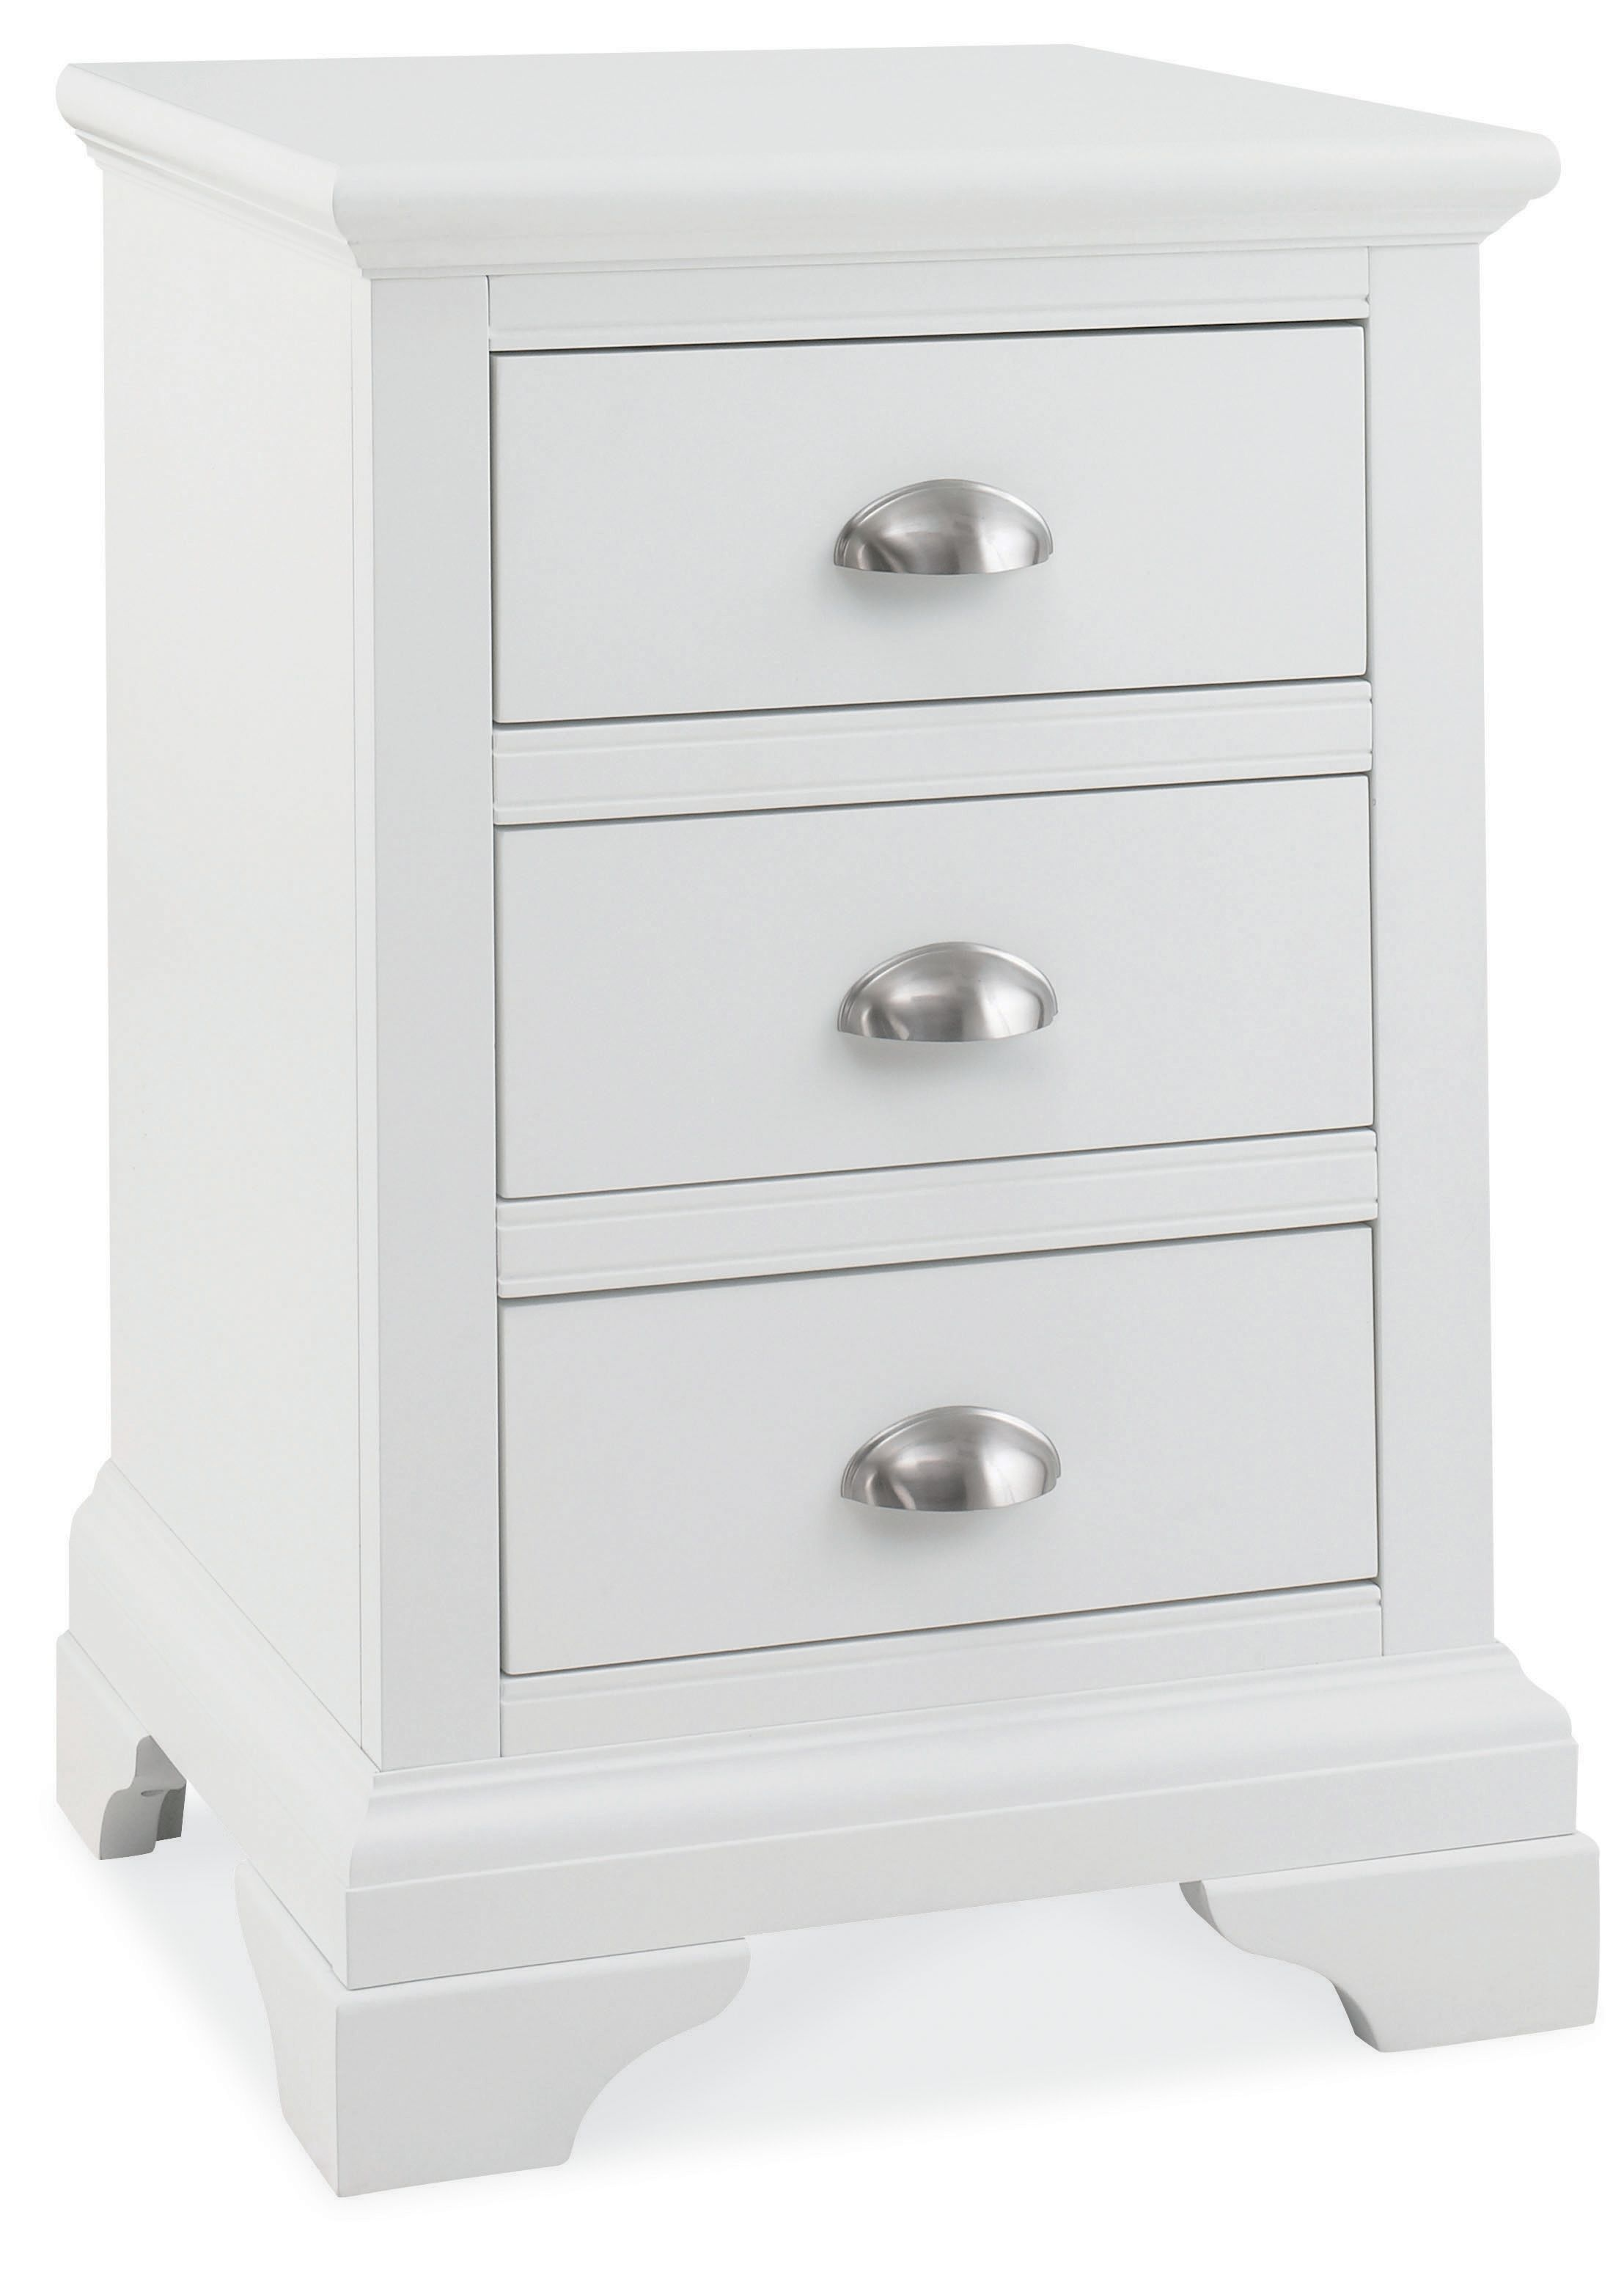 Dressers and Chests  EconoMax